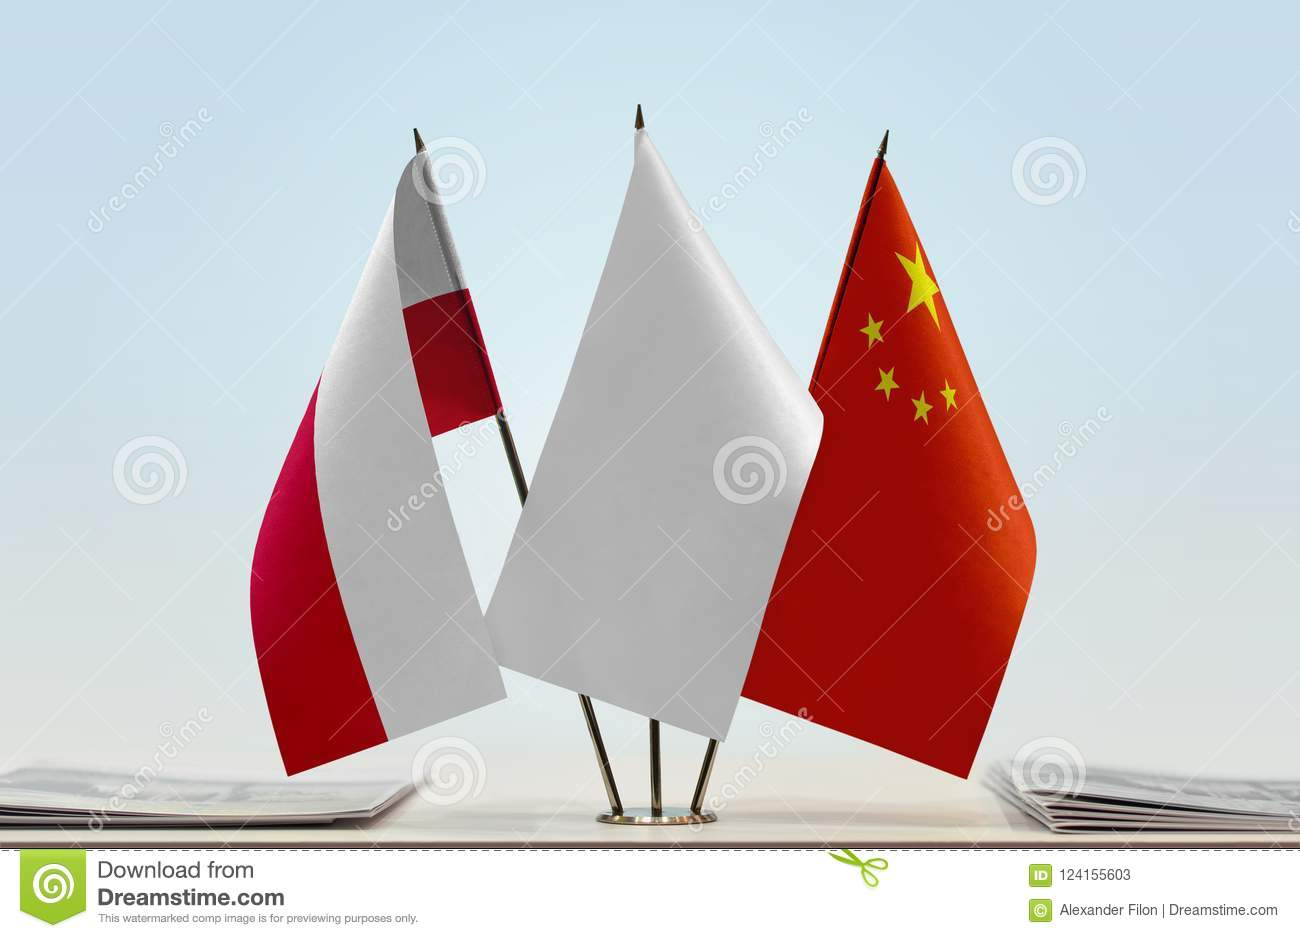 Flags of Poland and China